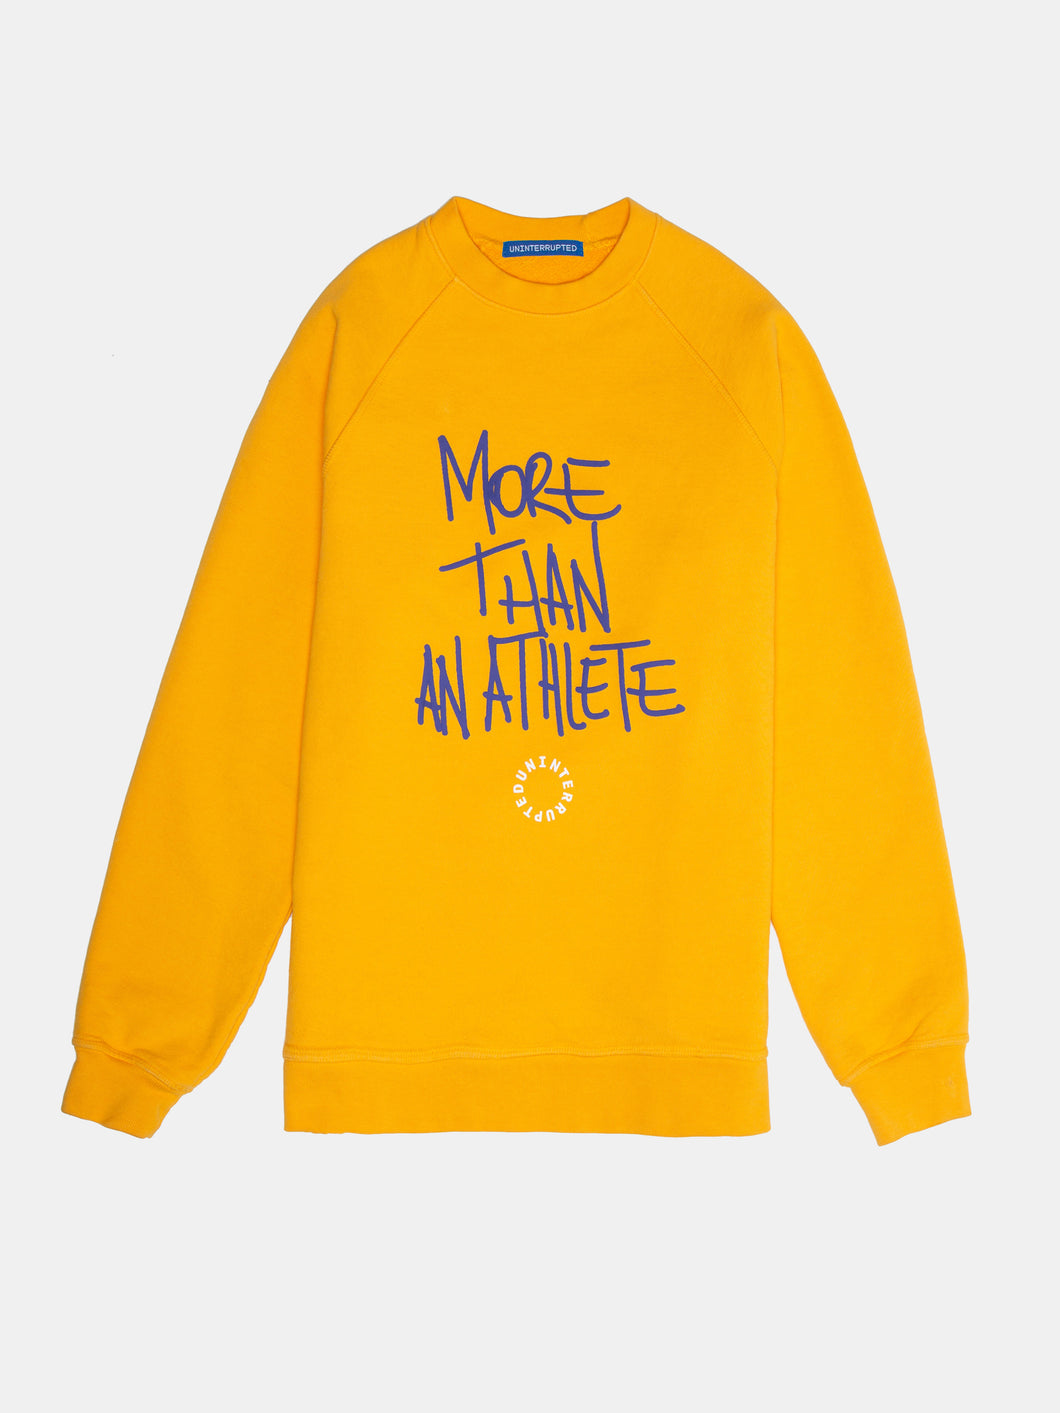 MORE THAN AN ATHLETE Yellow Crewneck